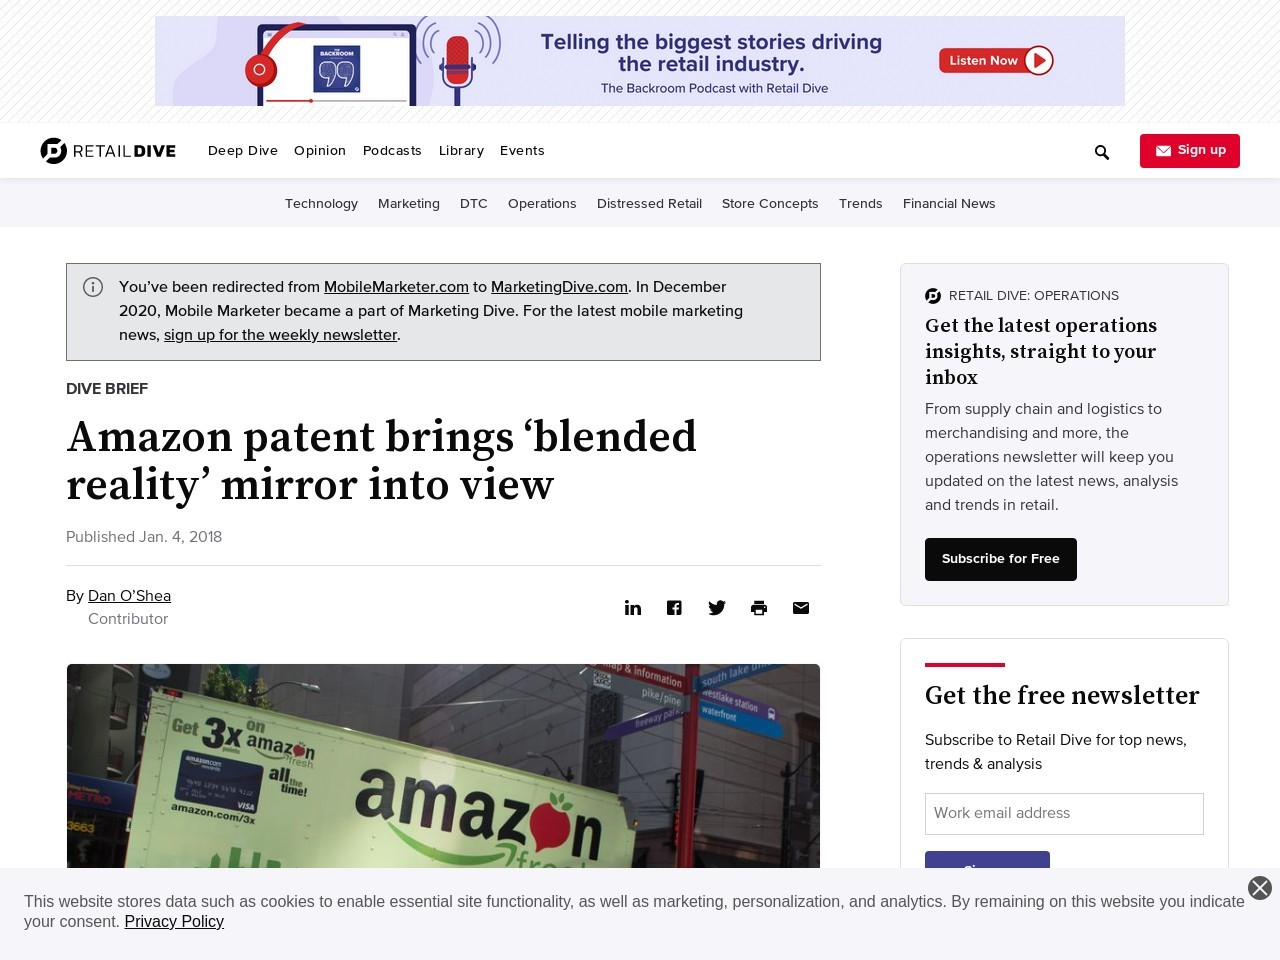 Amazon patent brings 'blended reality' mirror into view